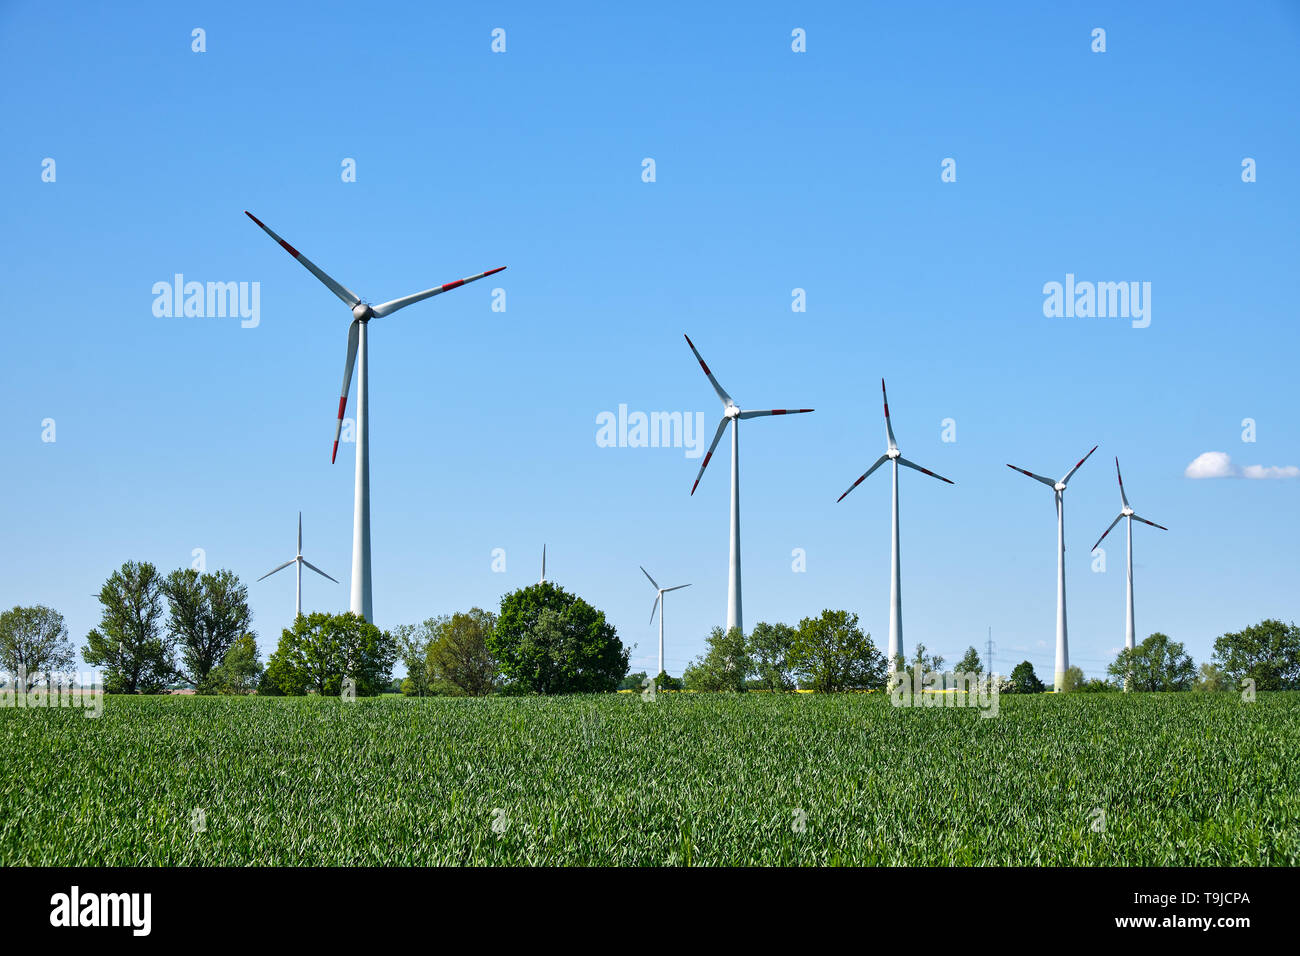 Modern wind wheels seen in a rural area in Germany - Stock Image